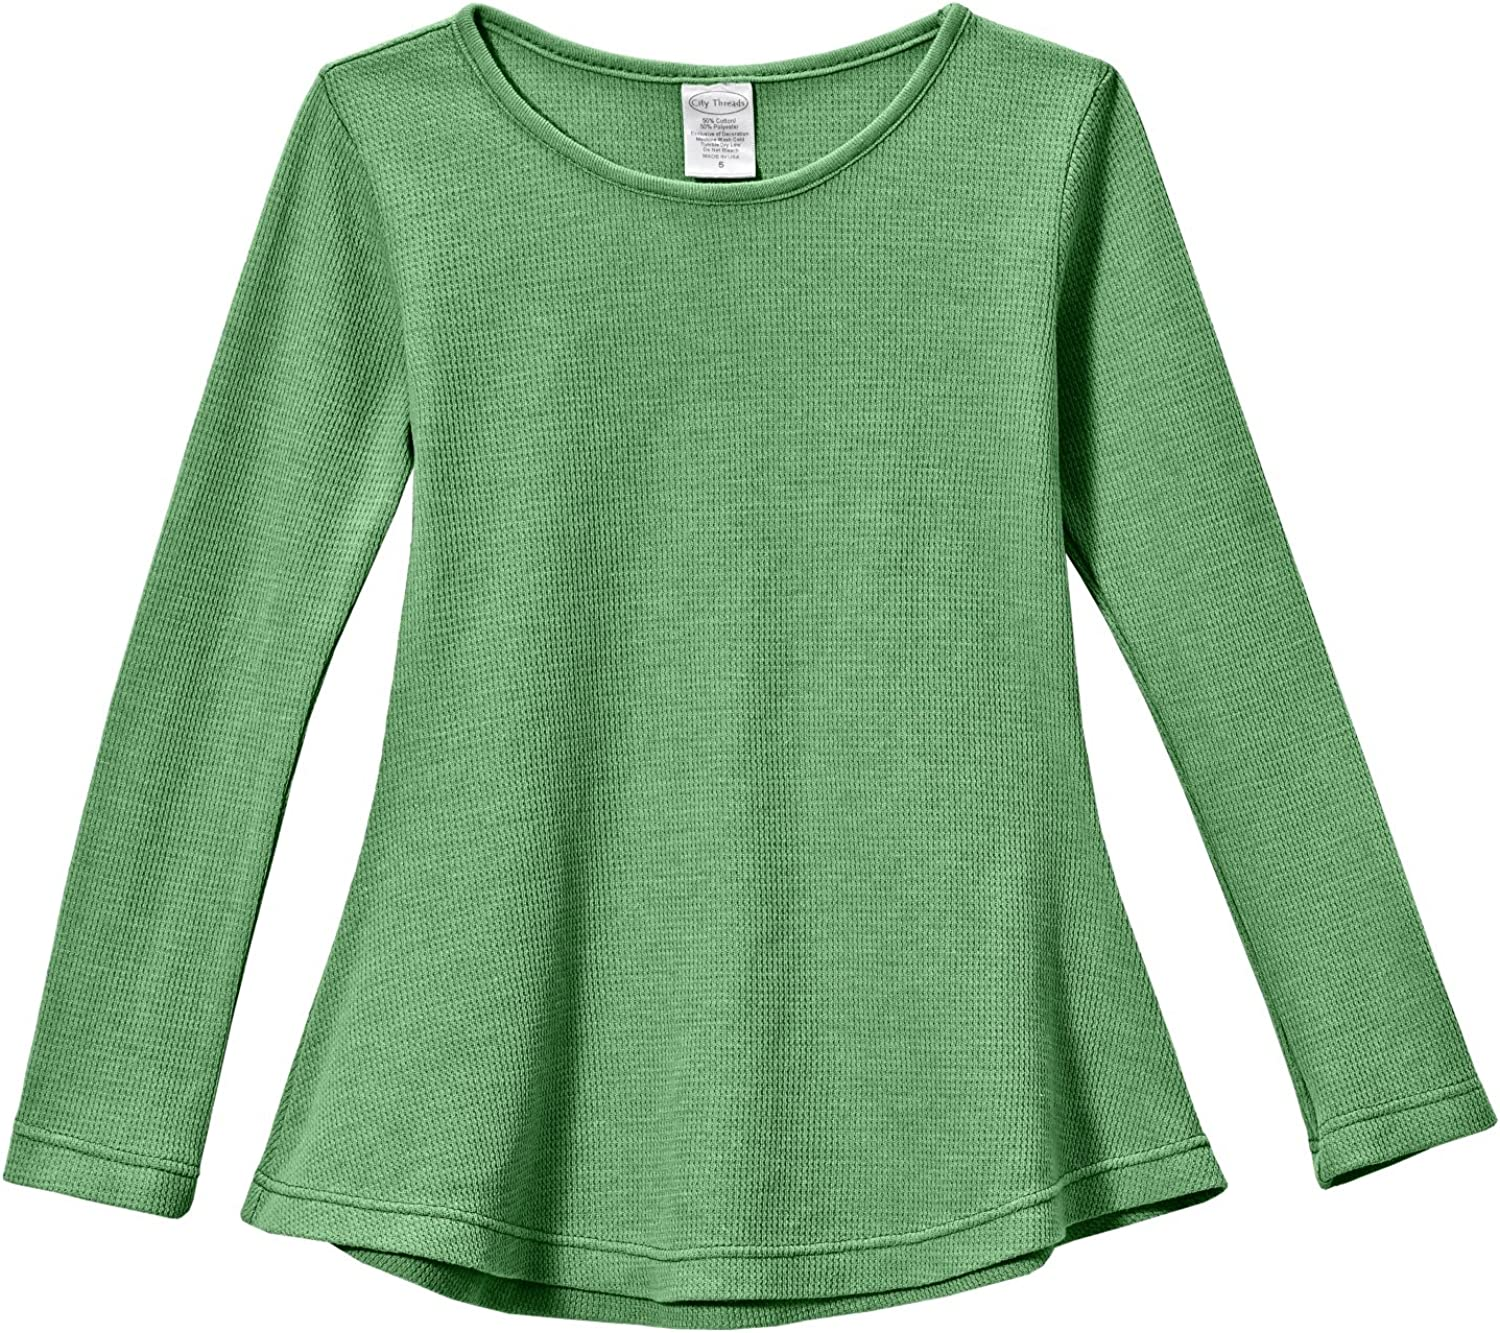 City Threads Max 42% OFF Girls Popularity Thermal Long School Tunic Shirt Sleeve for